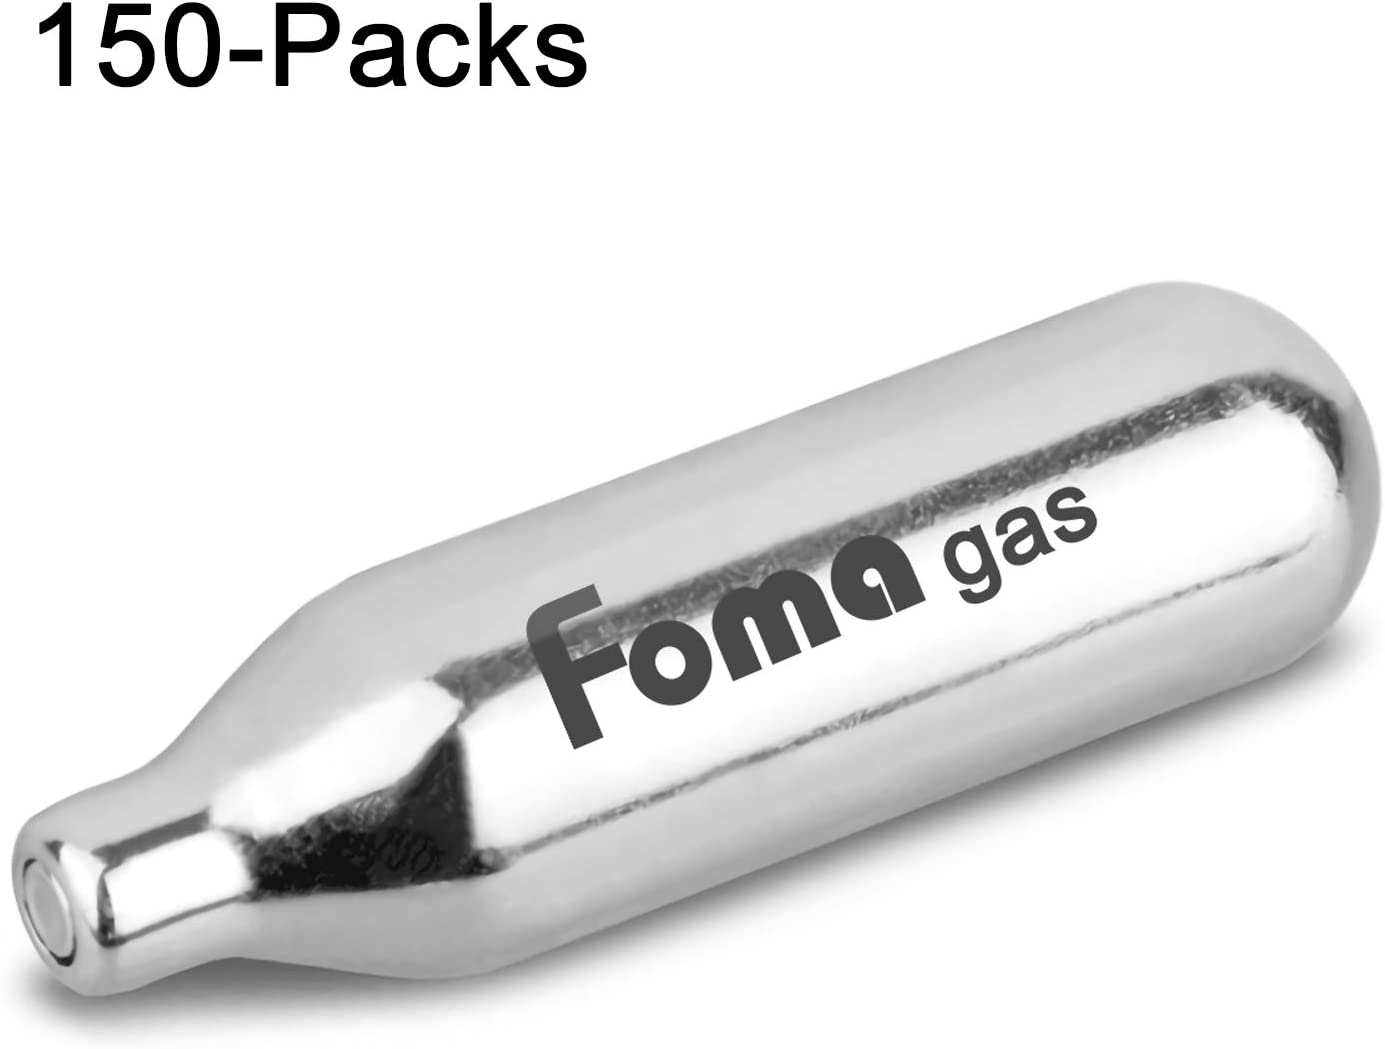 50 Pack FOMA GAS Whip Cream Chargers